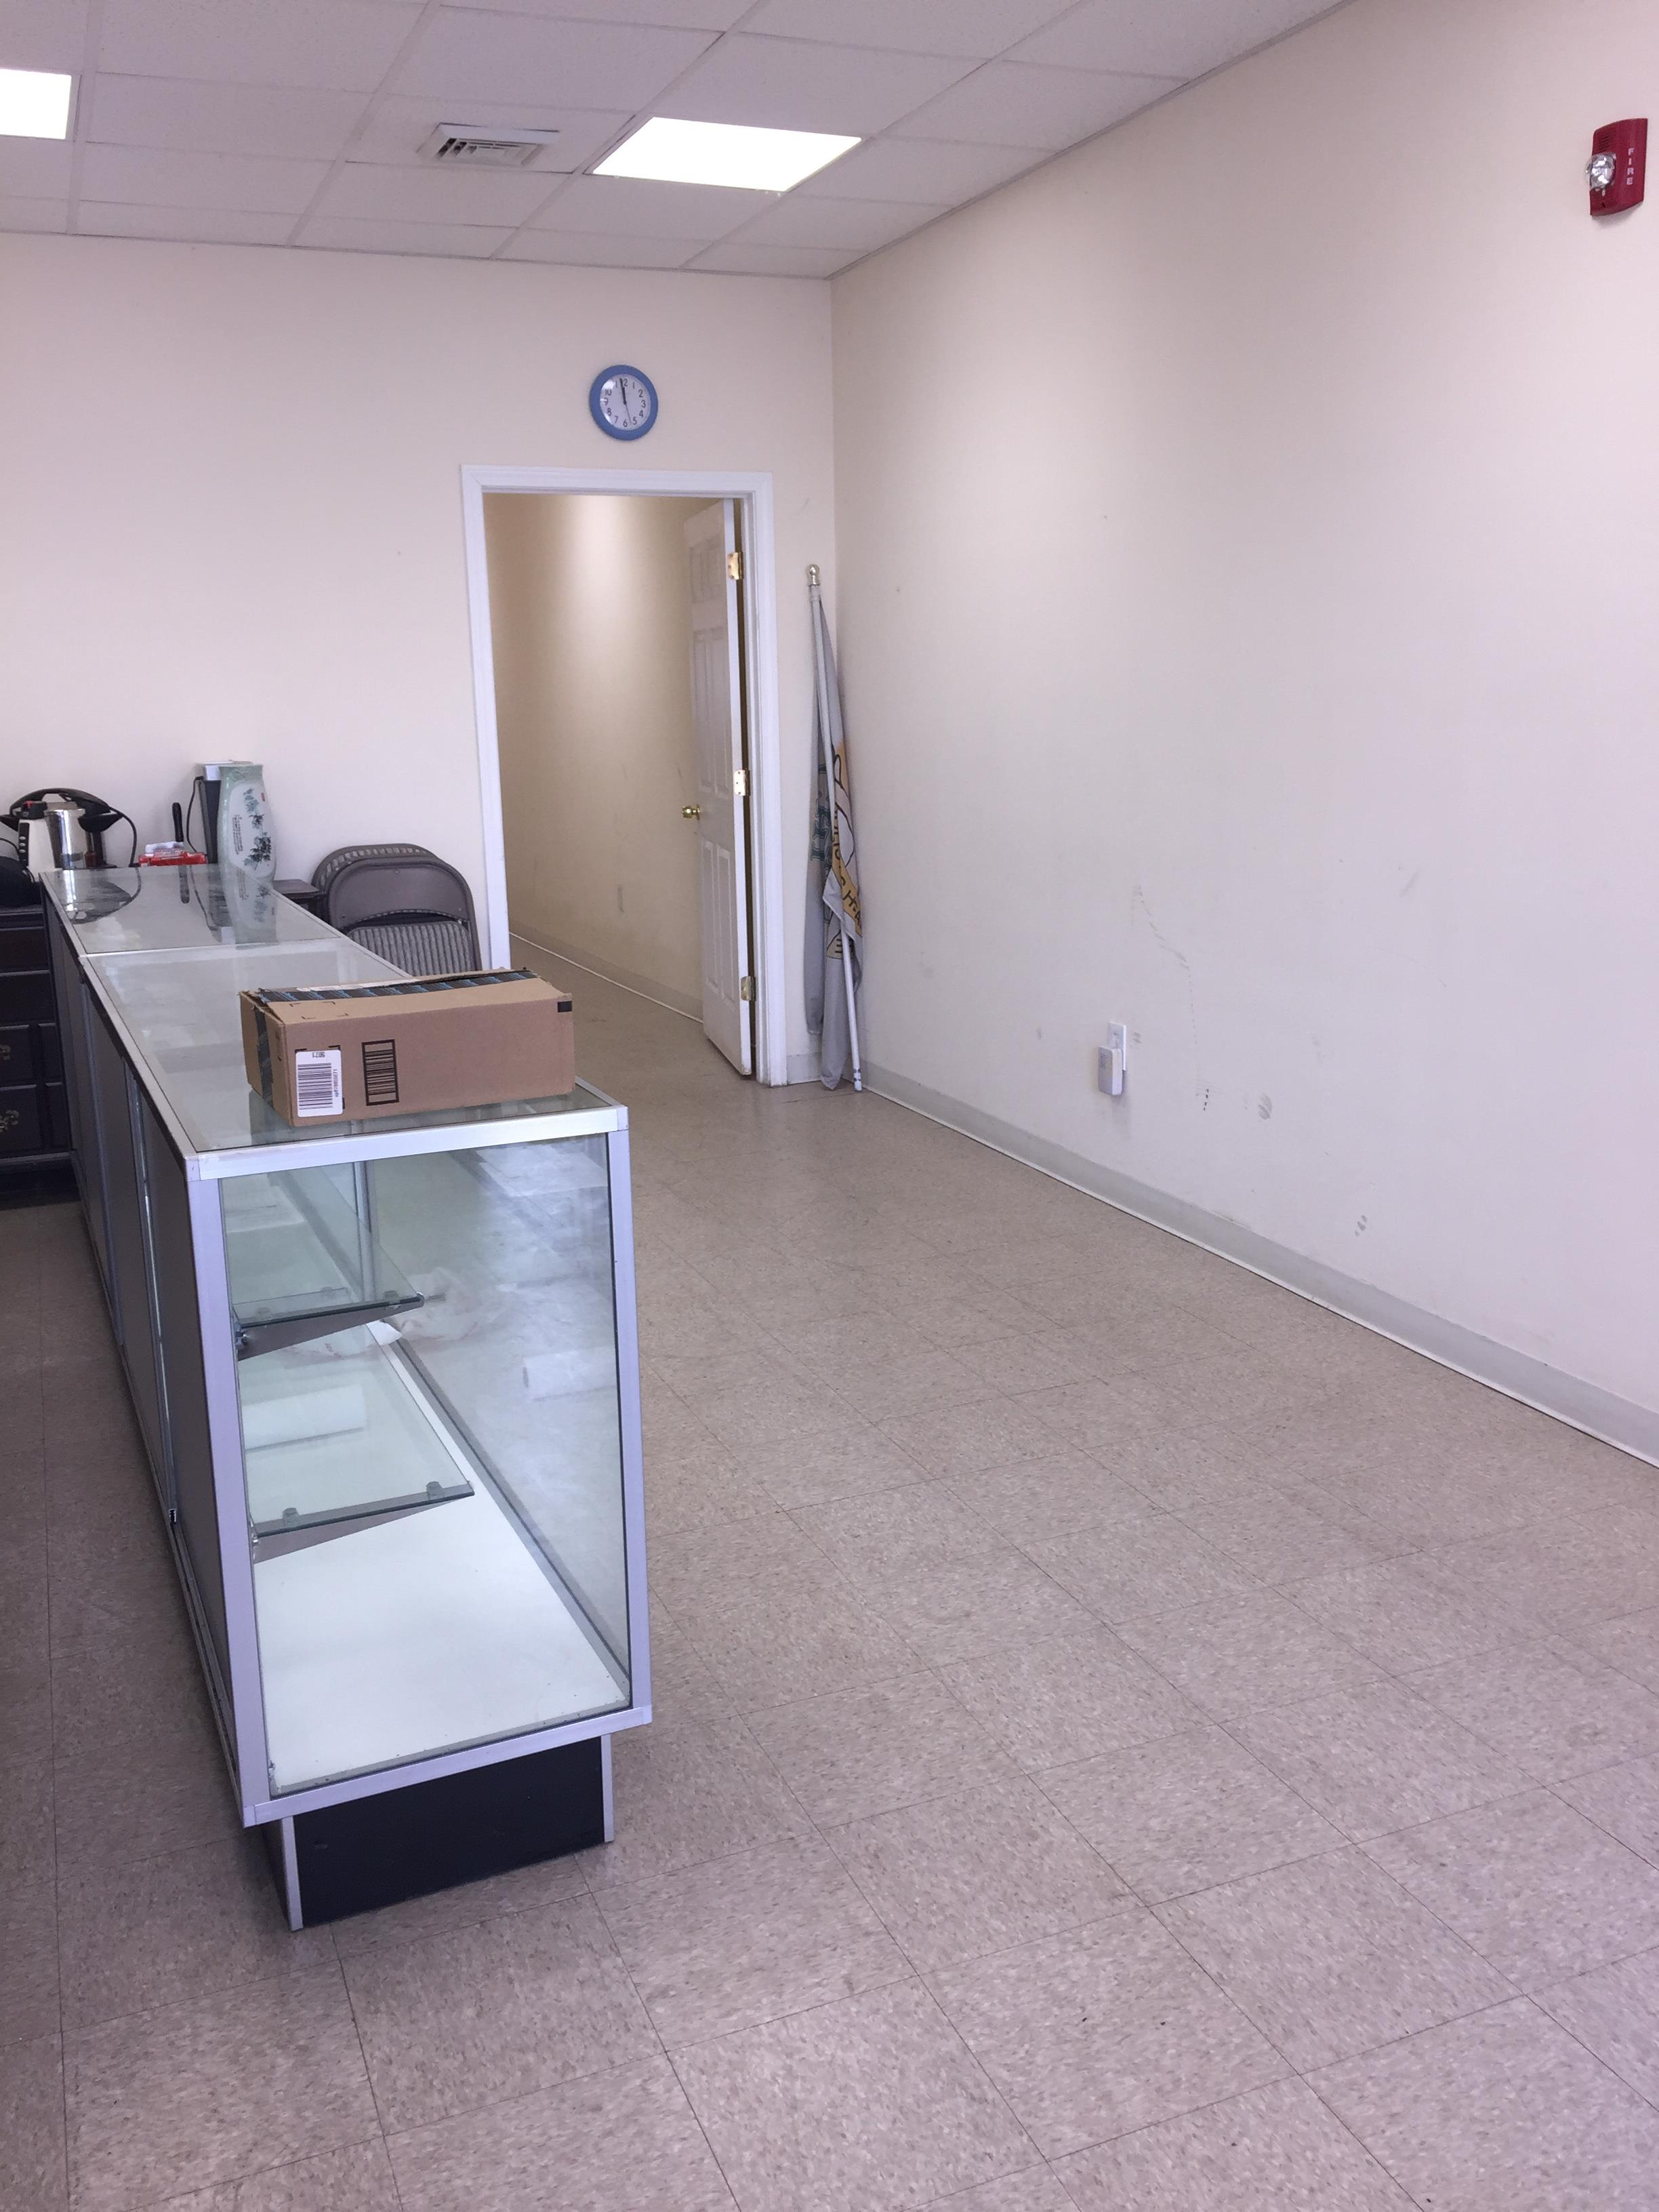 2,800 SF Retail Building For Sale in Somerville